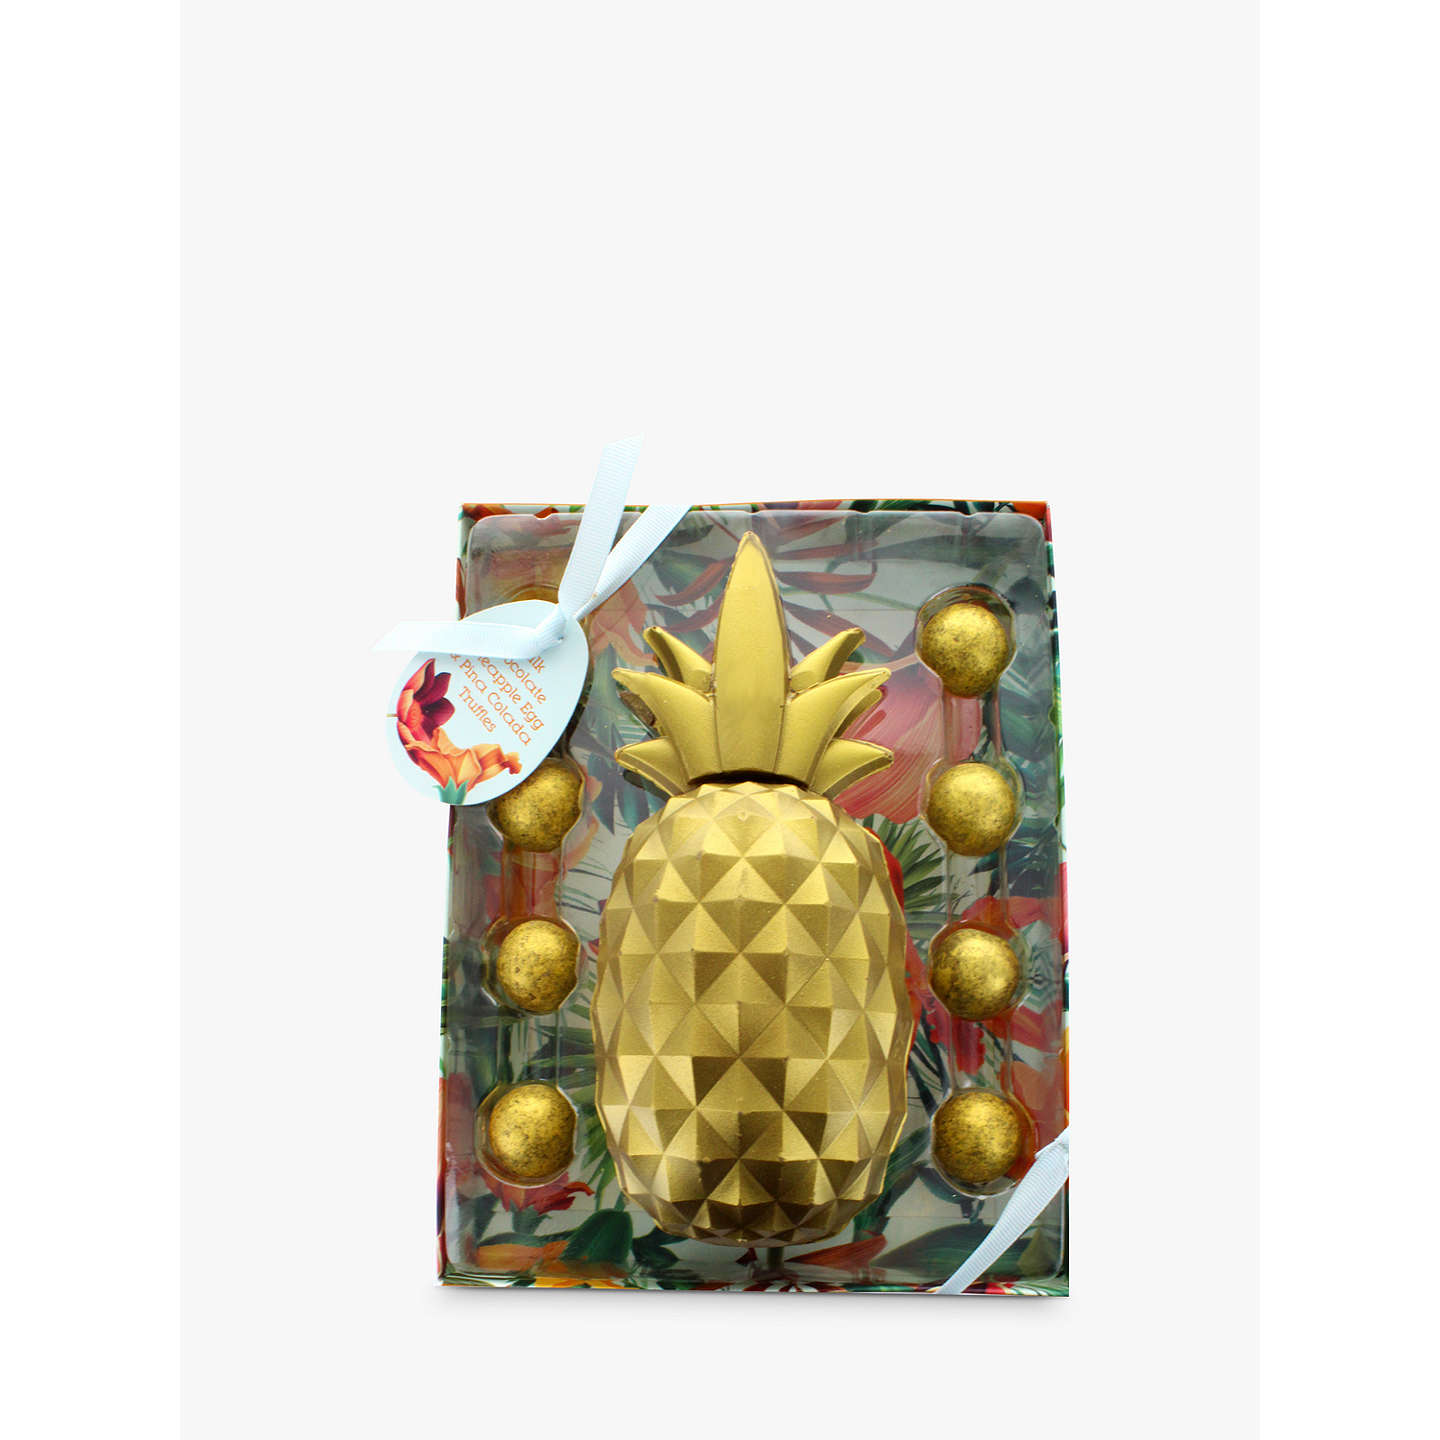 Artisan du chocolat pineapple easter egg 200g at john lewis buyartisan du chocolat pineapple easter egg 200g online at johnlewis negle Gallery